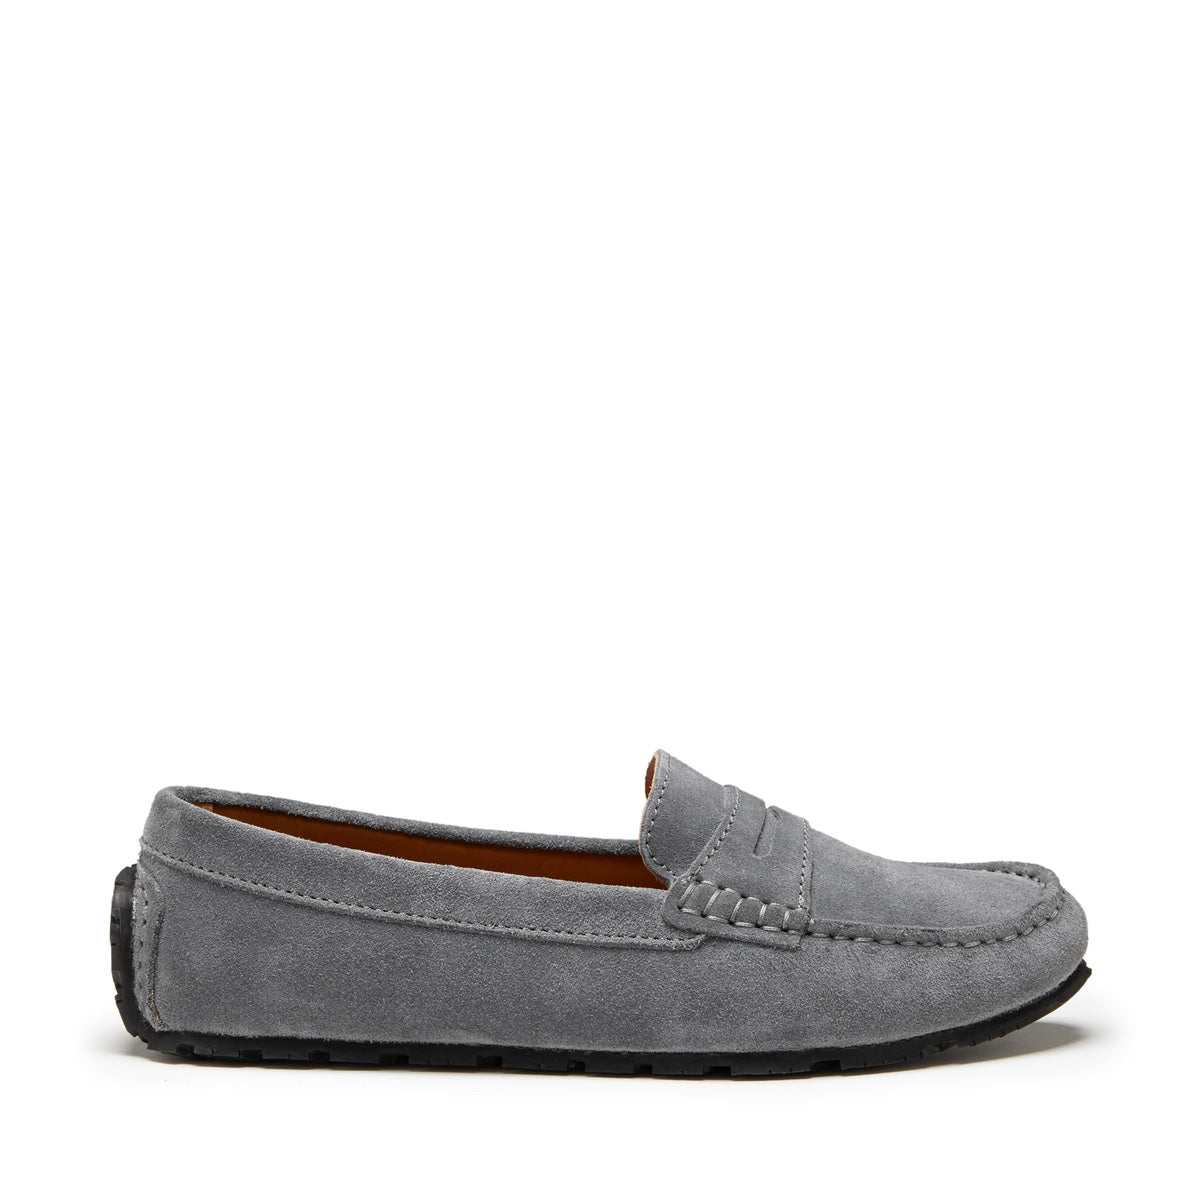 Women's Tyre Sole Penny Loafers, slate grey suede